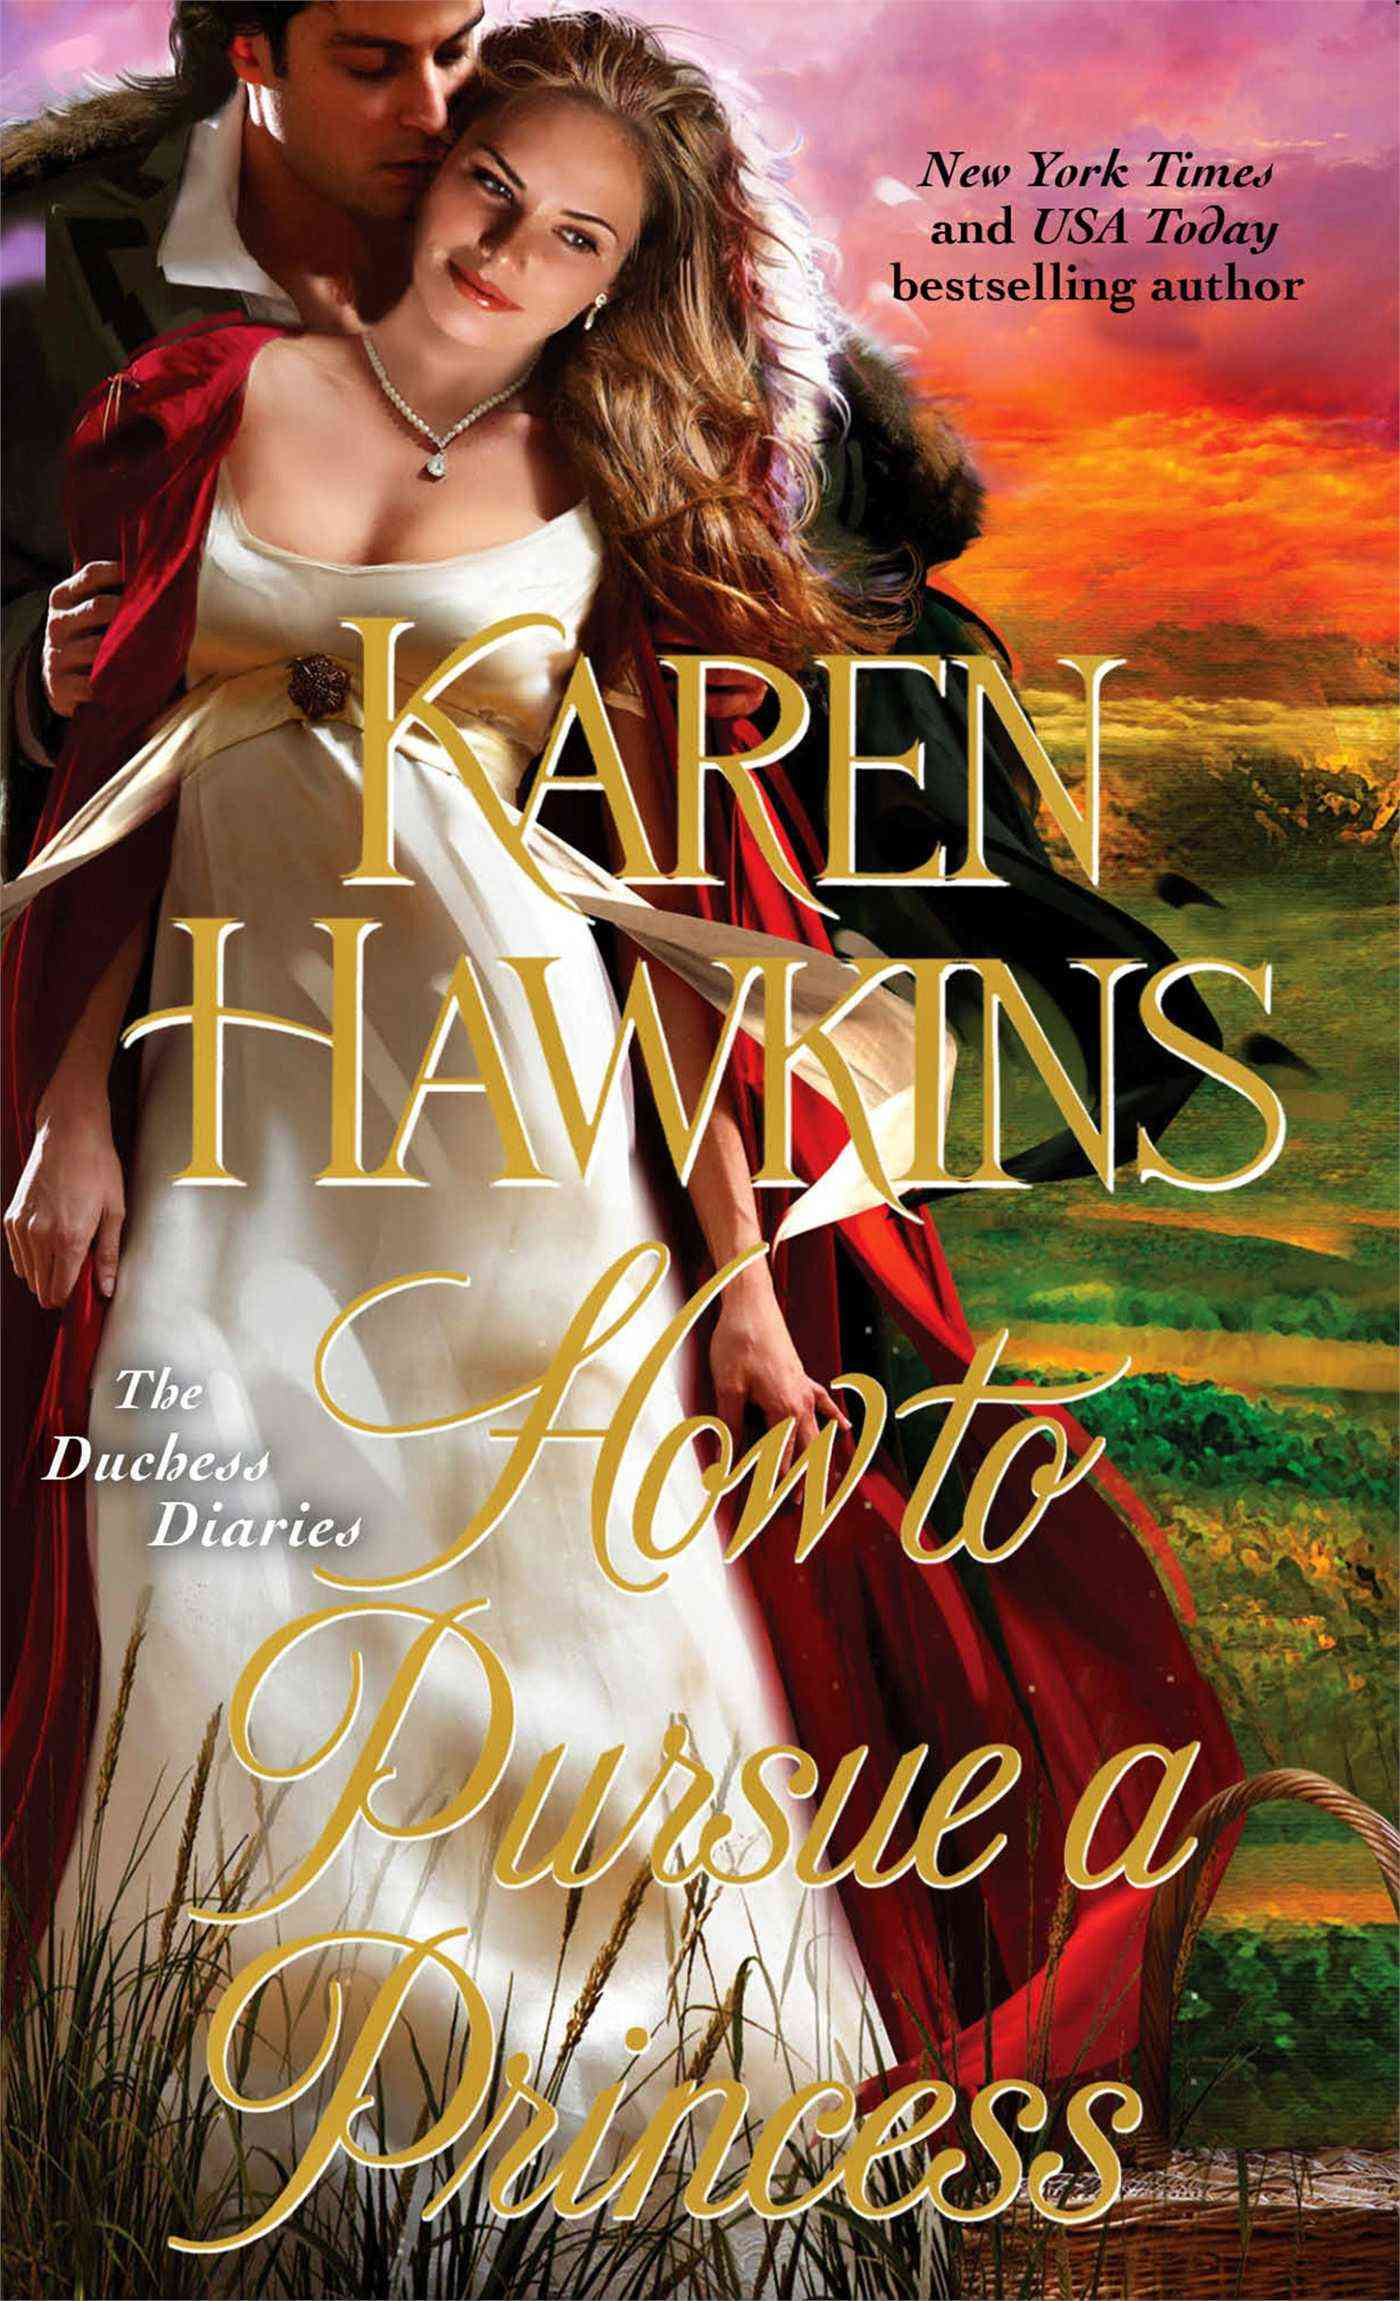 How to Pursue a Princess (Paperback)